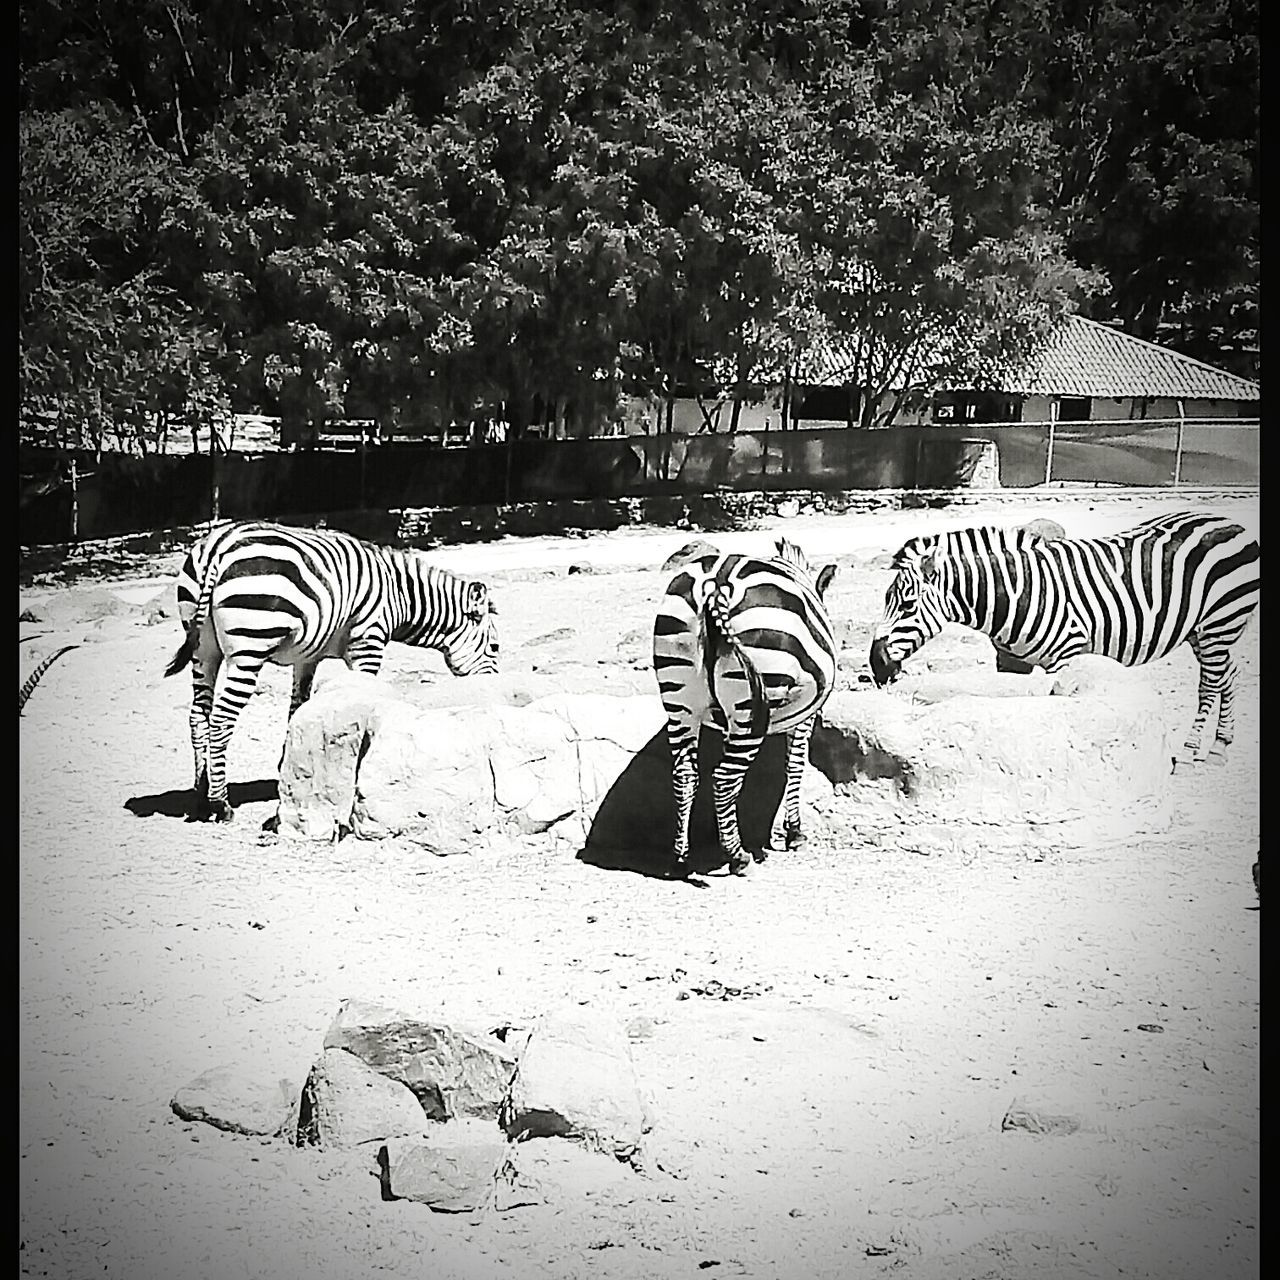 zebra, striped, animal themes, mammal, animals in the wild, tiger, day, outdoors, nature, no people, tree, safari animals